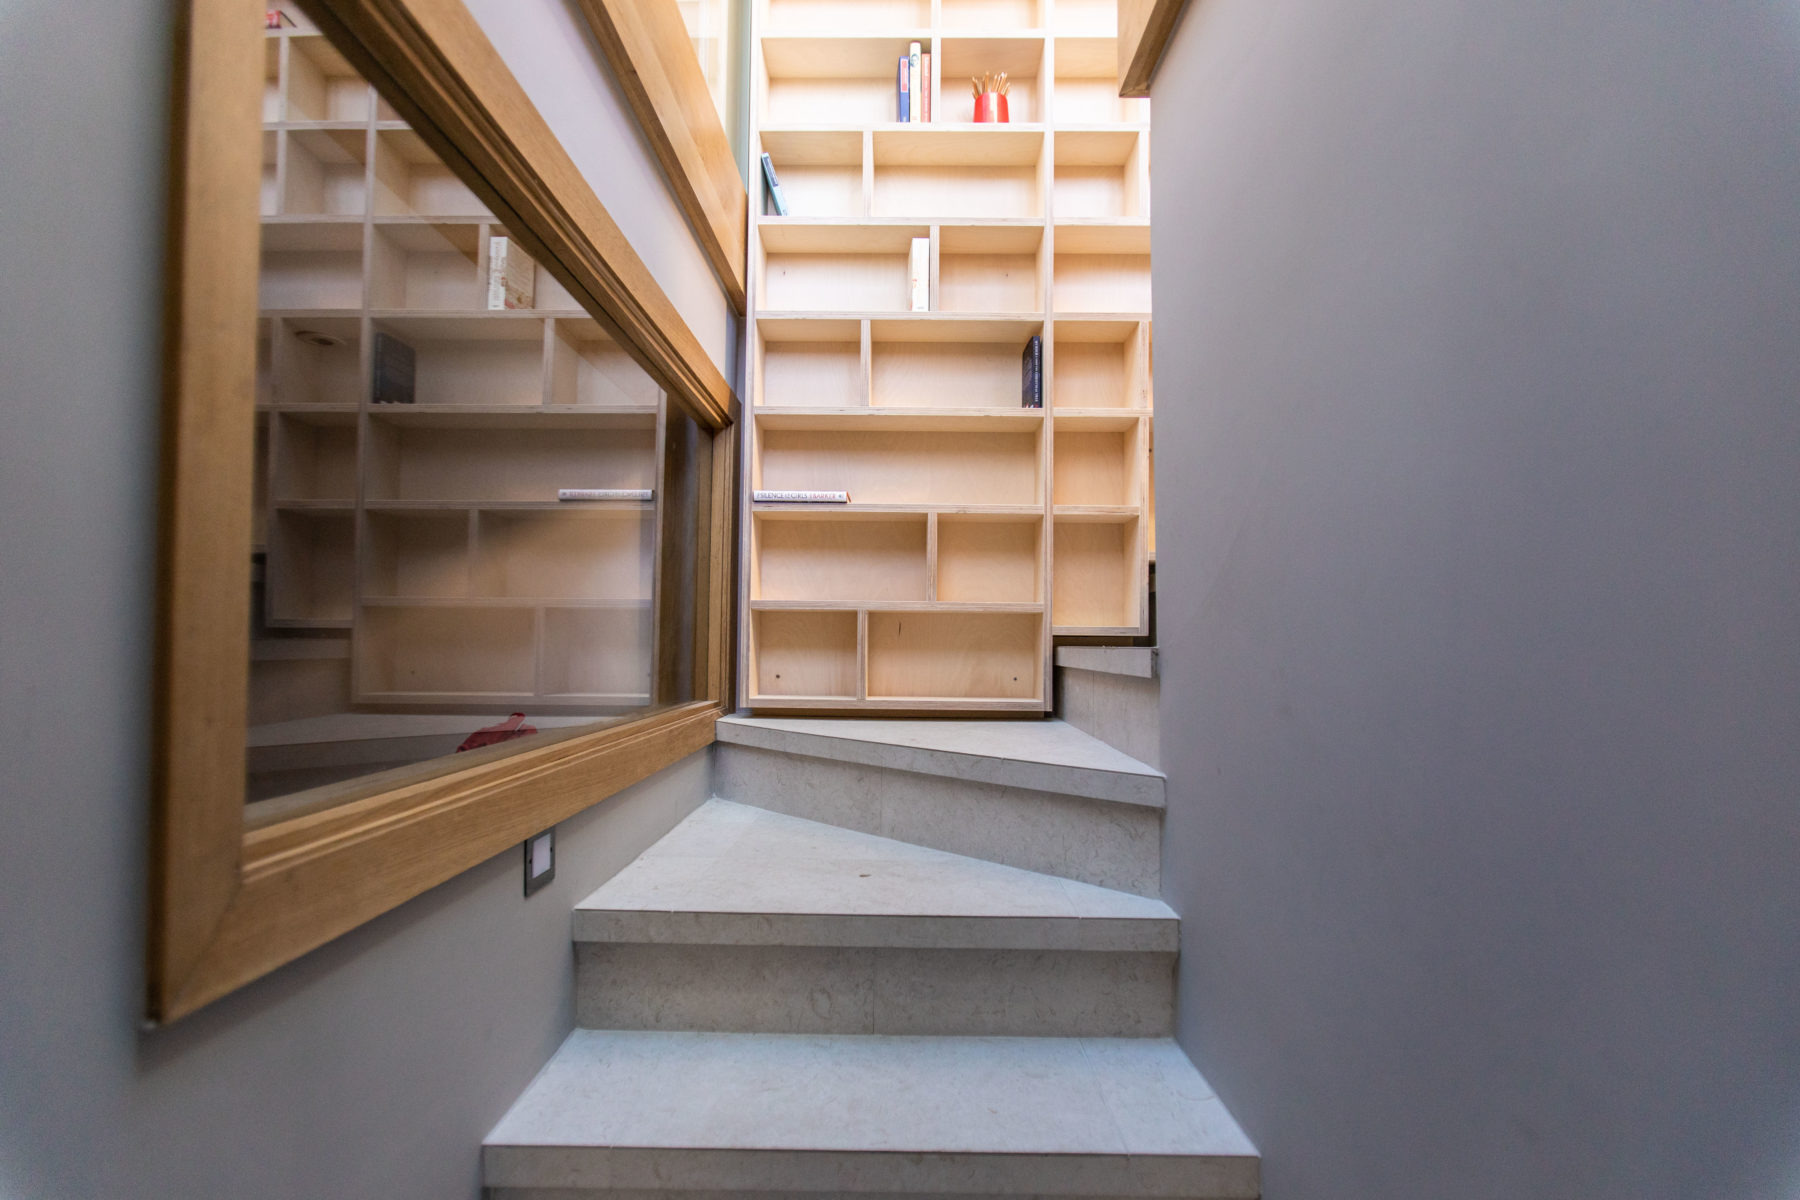 Library bookcase on stairway